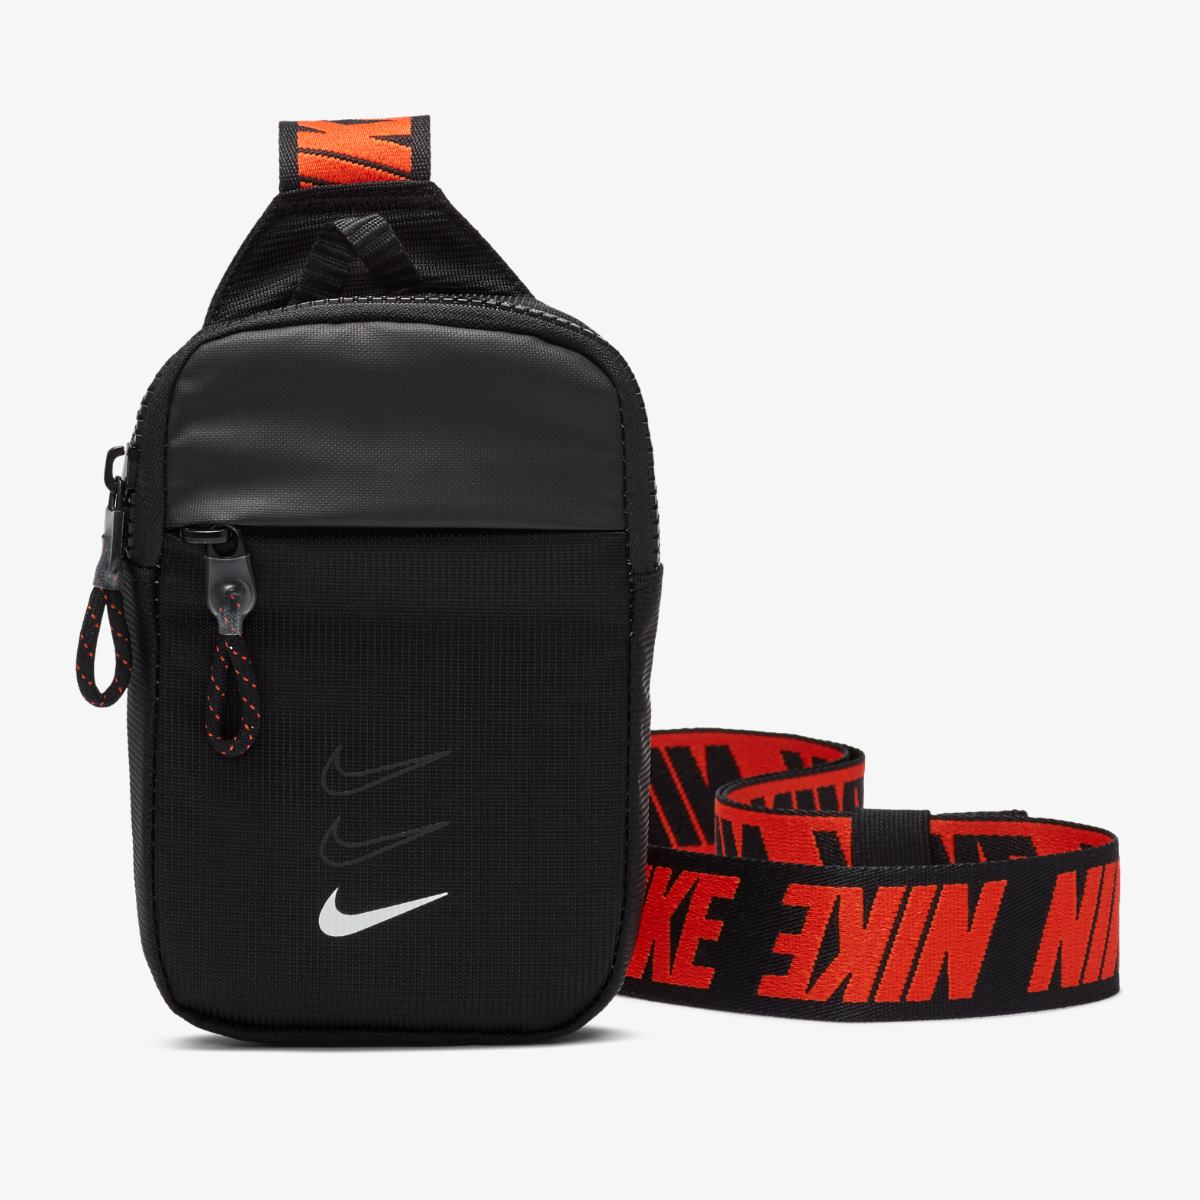 Сумка на пояс NIKE NK SPRTSWR ESSENTIALS S HIP P